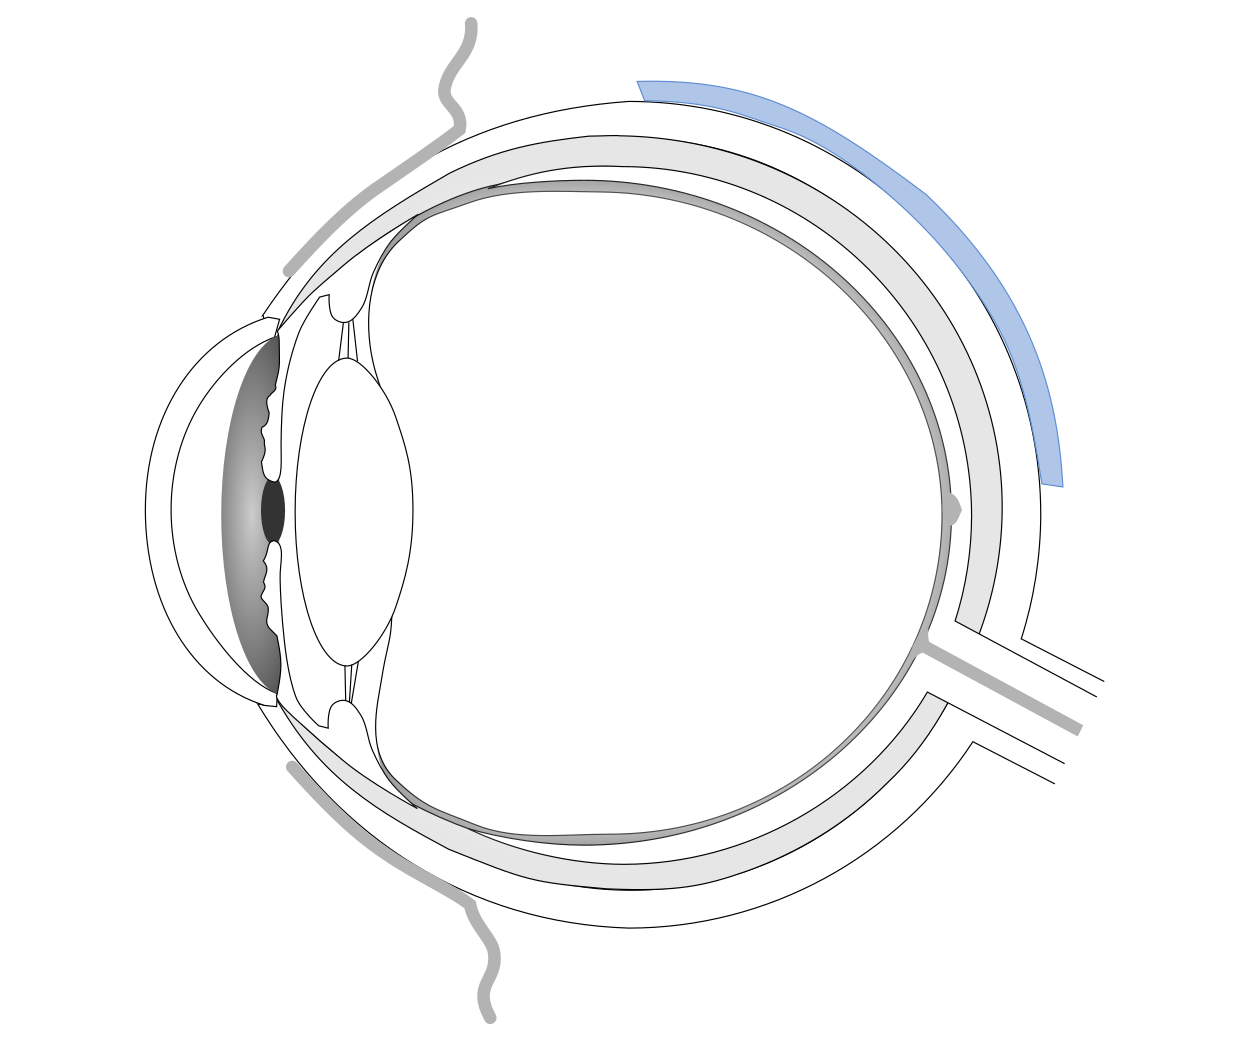 Eye with scleral buckle on the surface